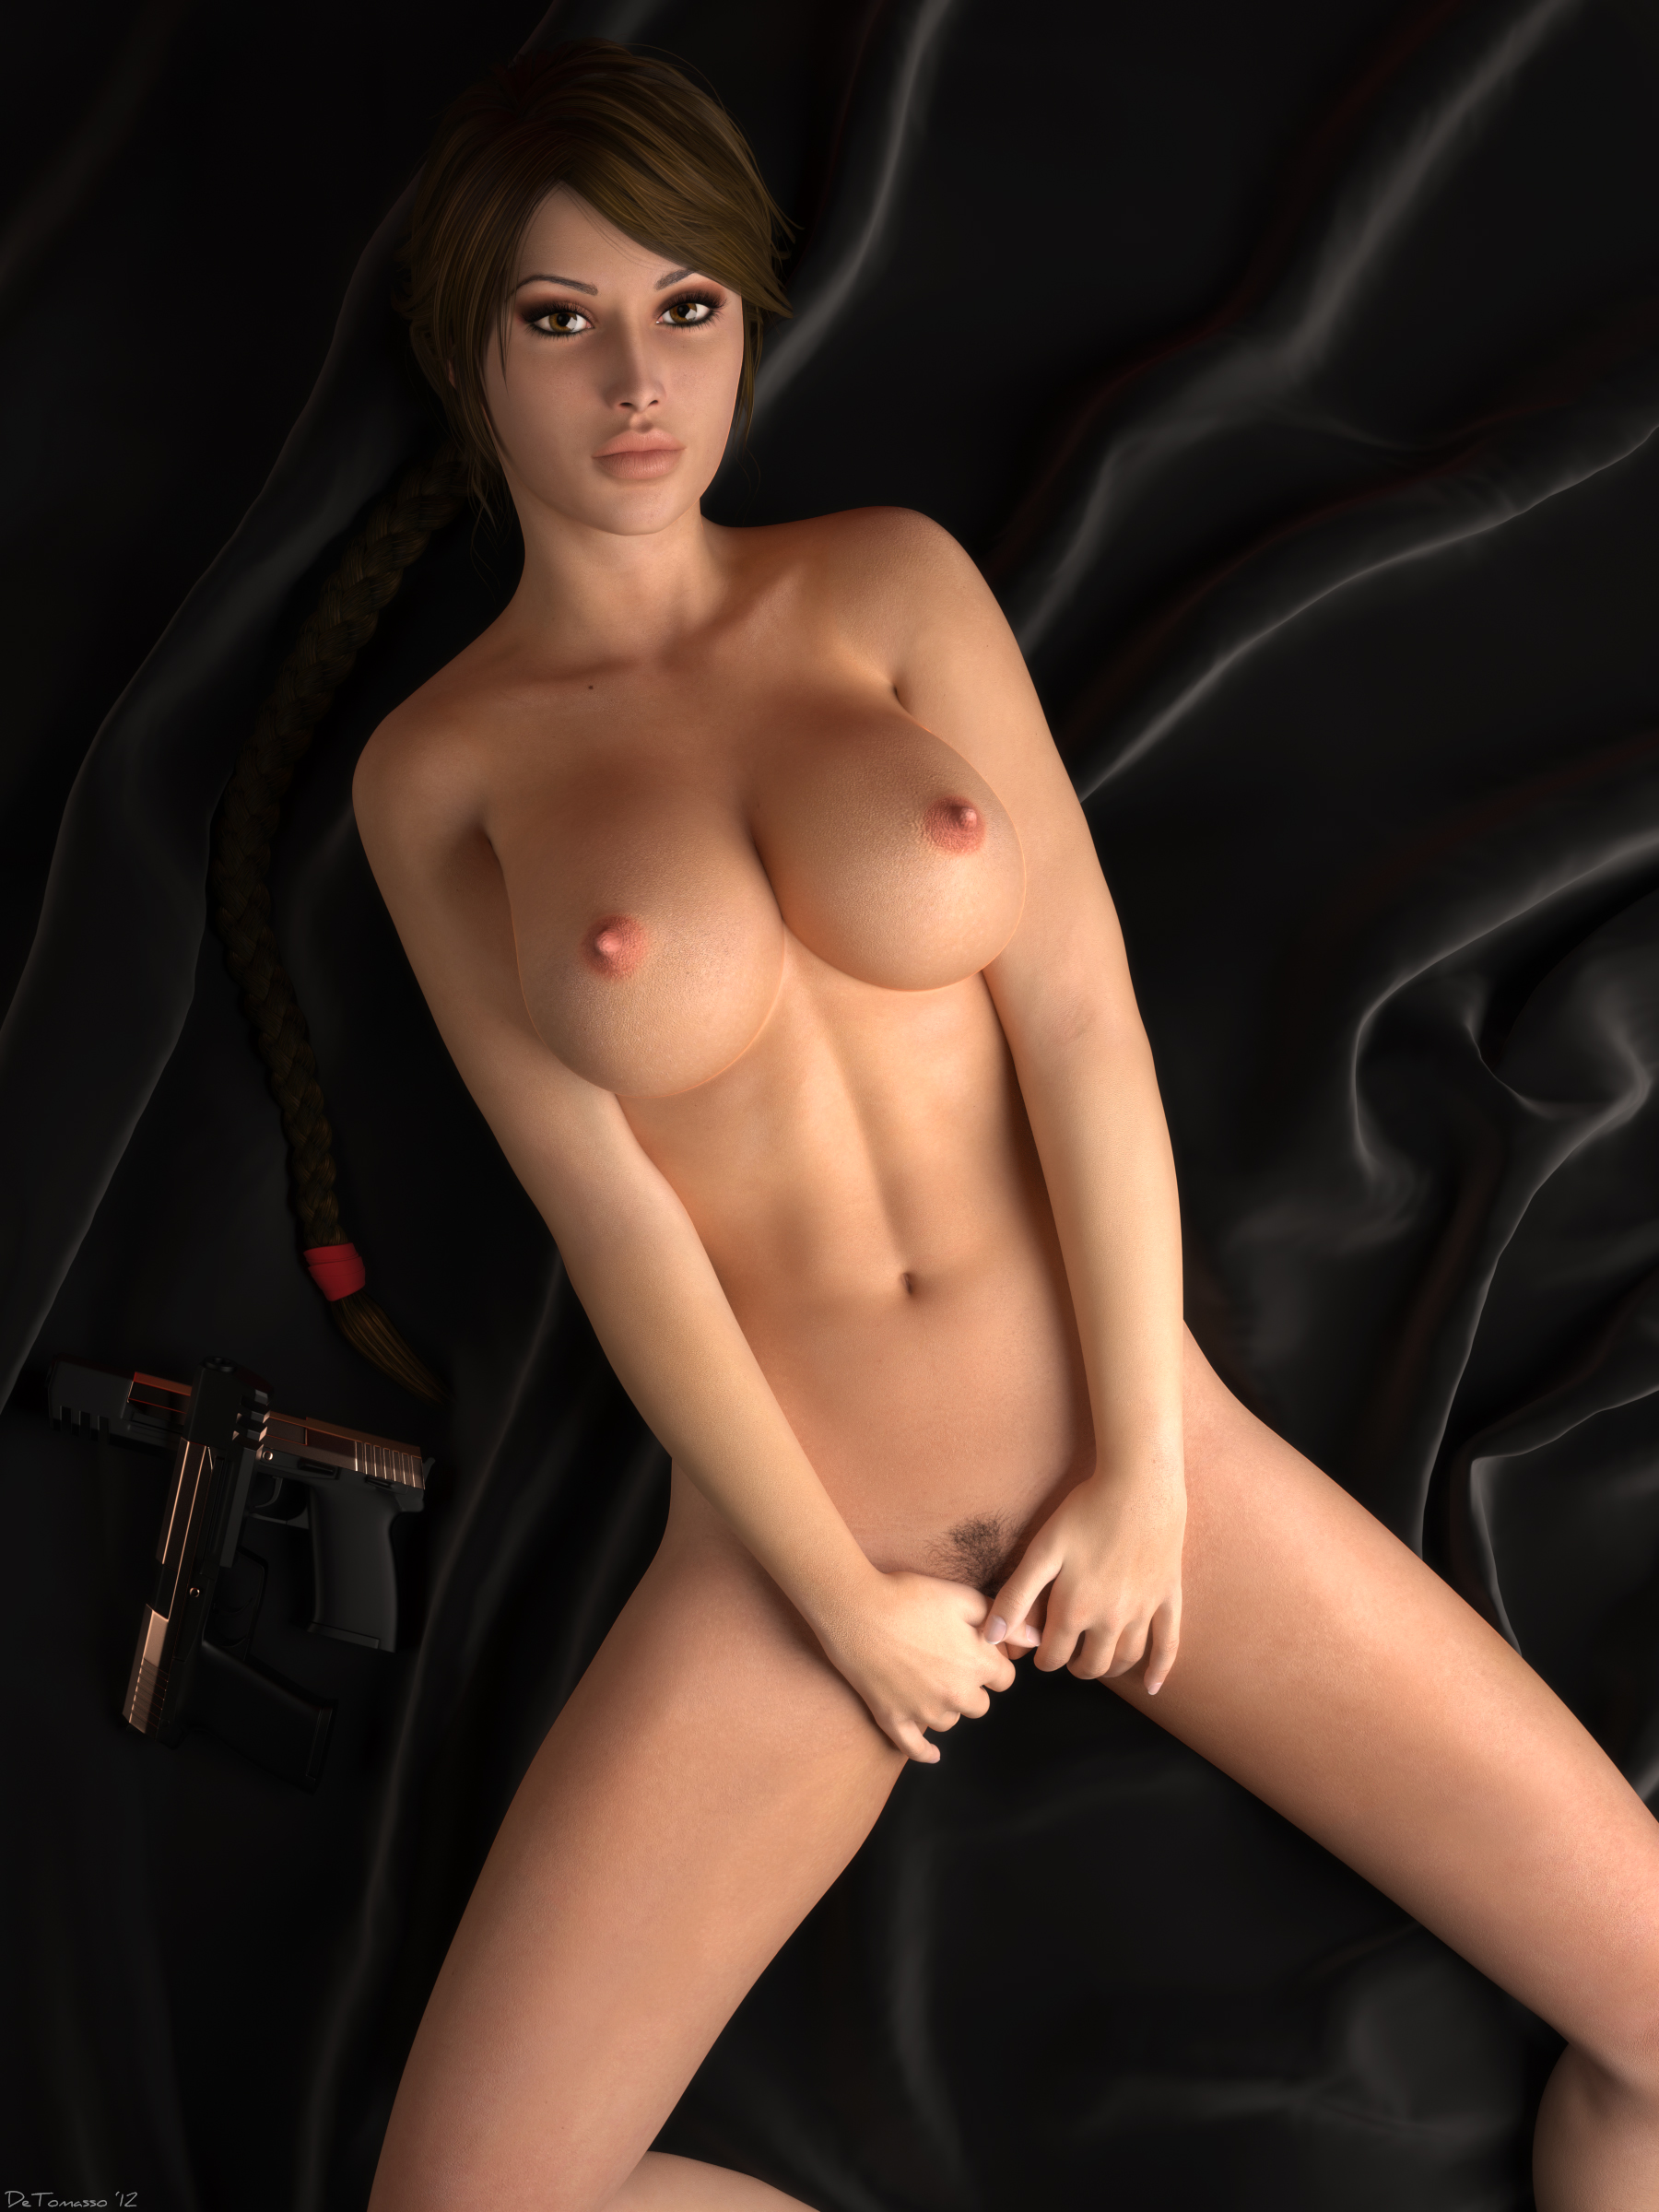 Lara croft nude mods anime film